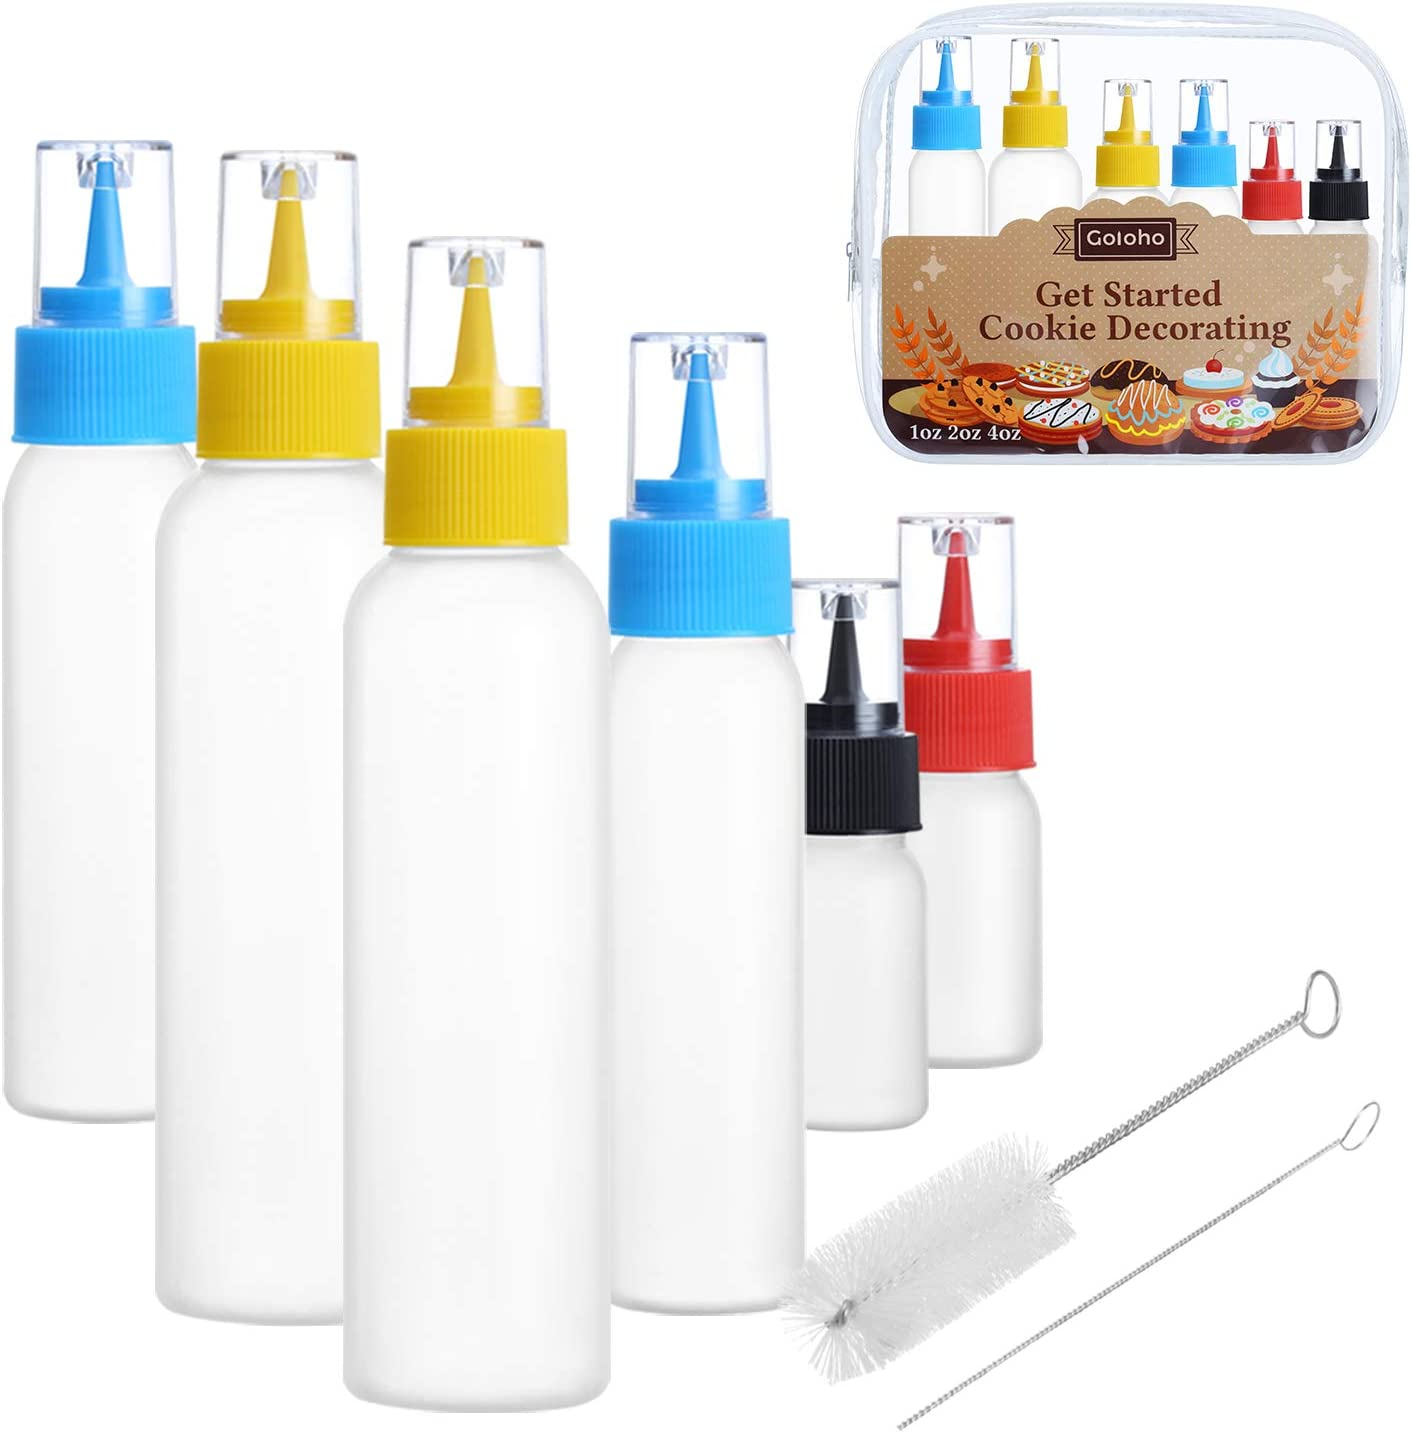 Writer Bottles, Cake Decorating Squeeze Bottles, 4 each(1, 2, and 4 ounce), Cookie Cutter, Food Coloring and Royal Icing Supplies